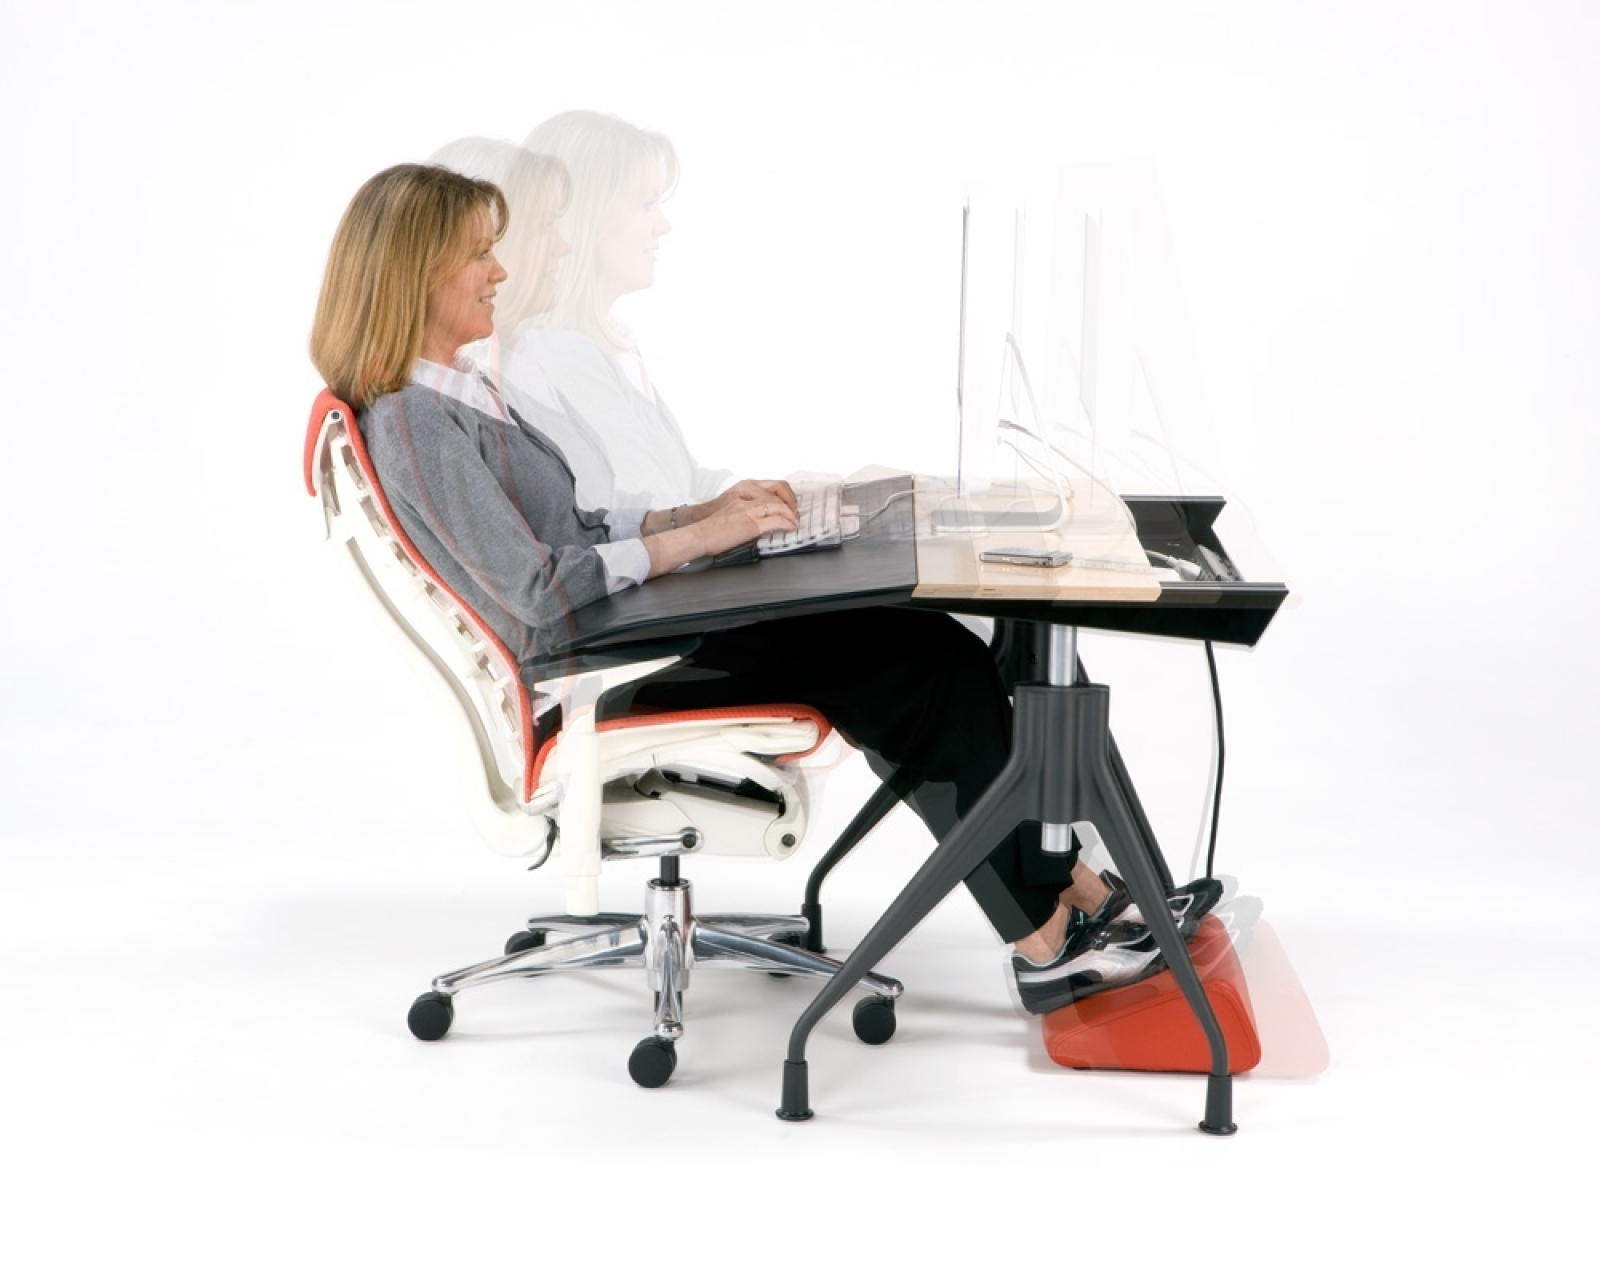 Most Current Computer Desks Ergonomic For Home Within Why We Should Apply Chair And Ergonomic Computer Desk Today (View 3 of 20)